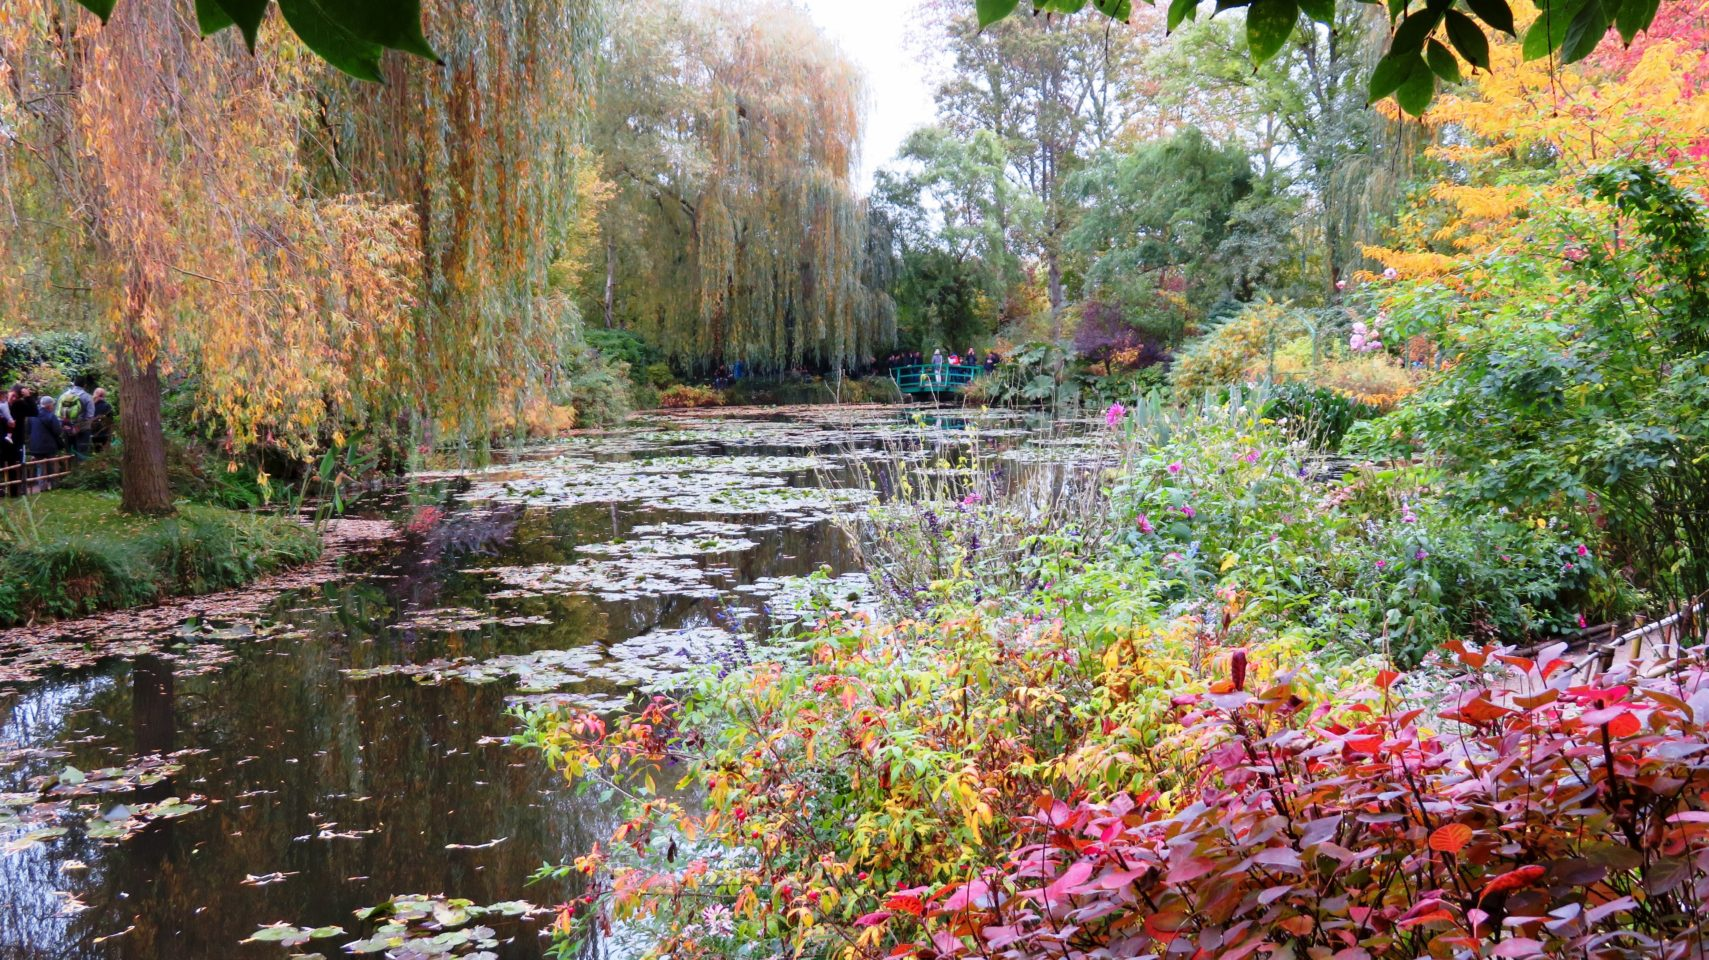 Claude Monet's Giverny ~ Paris and Normandie AmaWaterways Cruise